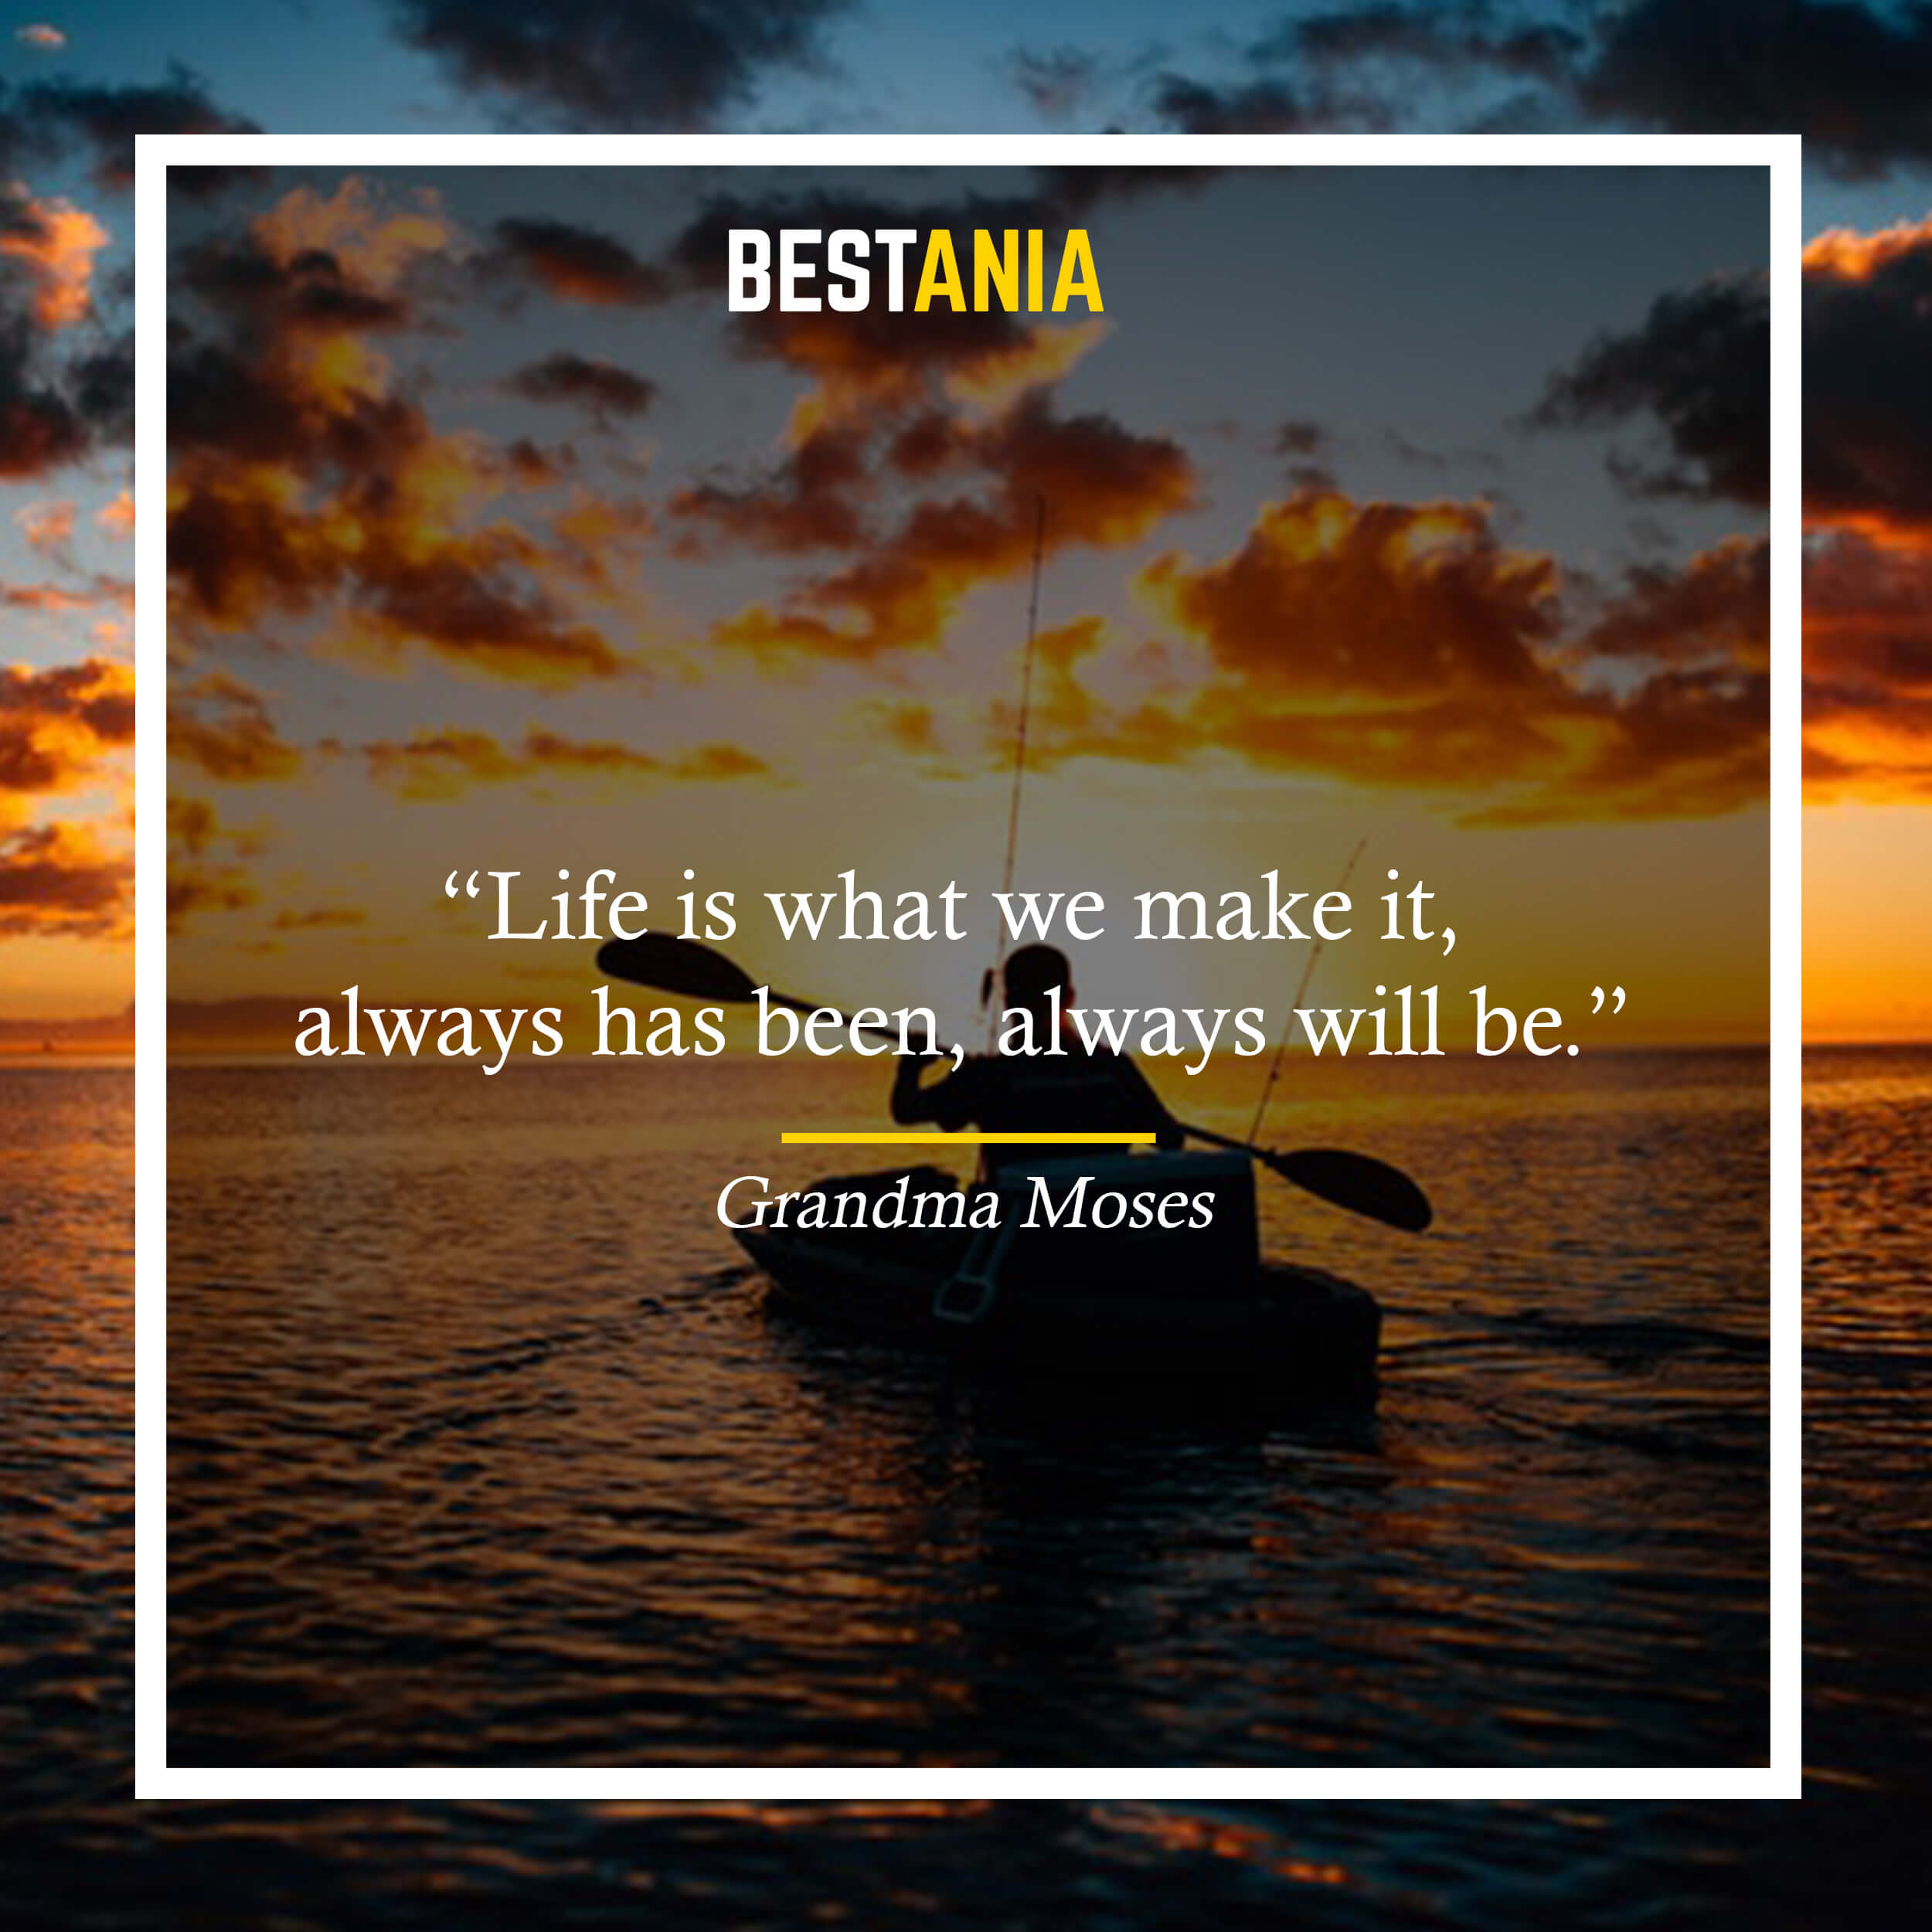 """Life is what we make it, always has been, always will be."" – Grandma Moses"